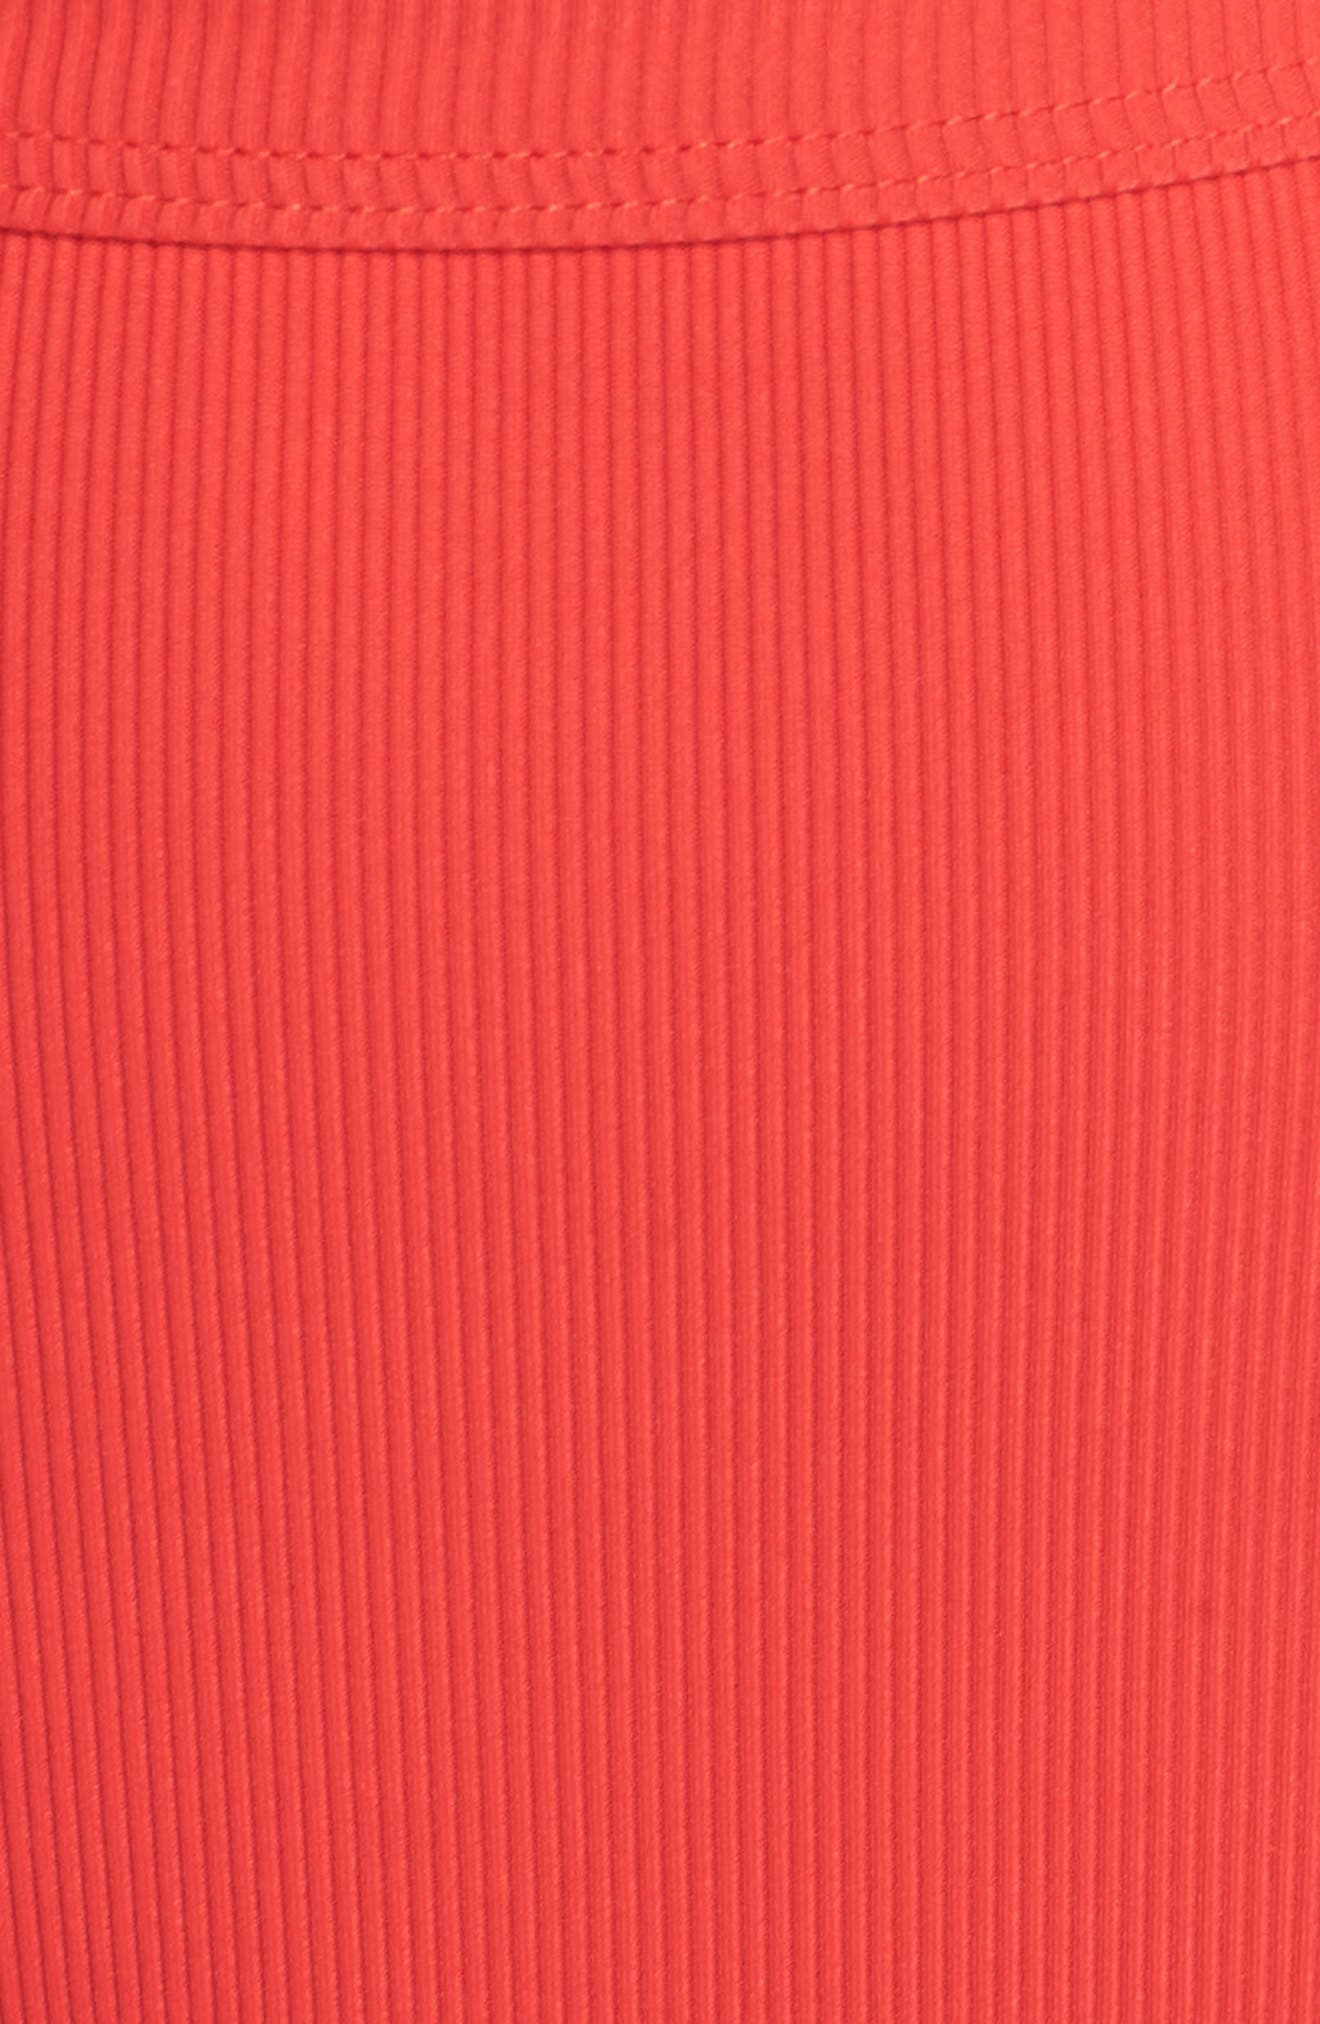 Ribbed Swim Bottoms,                             Alternate thumbnail 8, color,                             Red